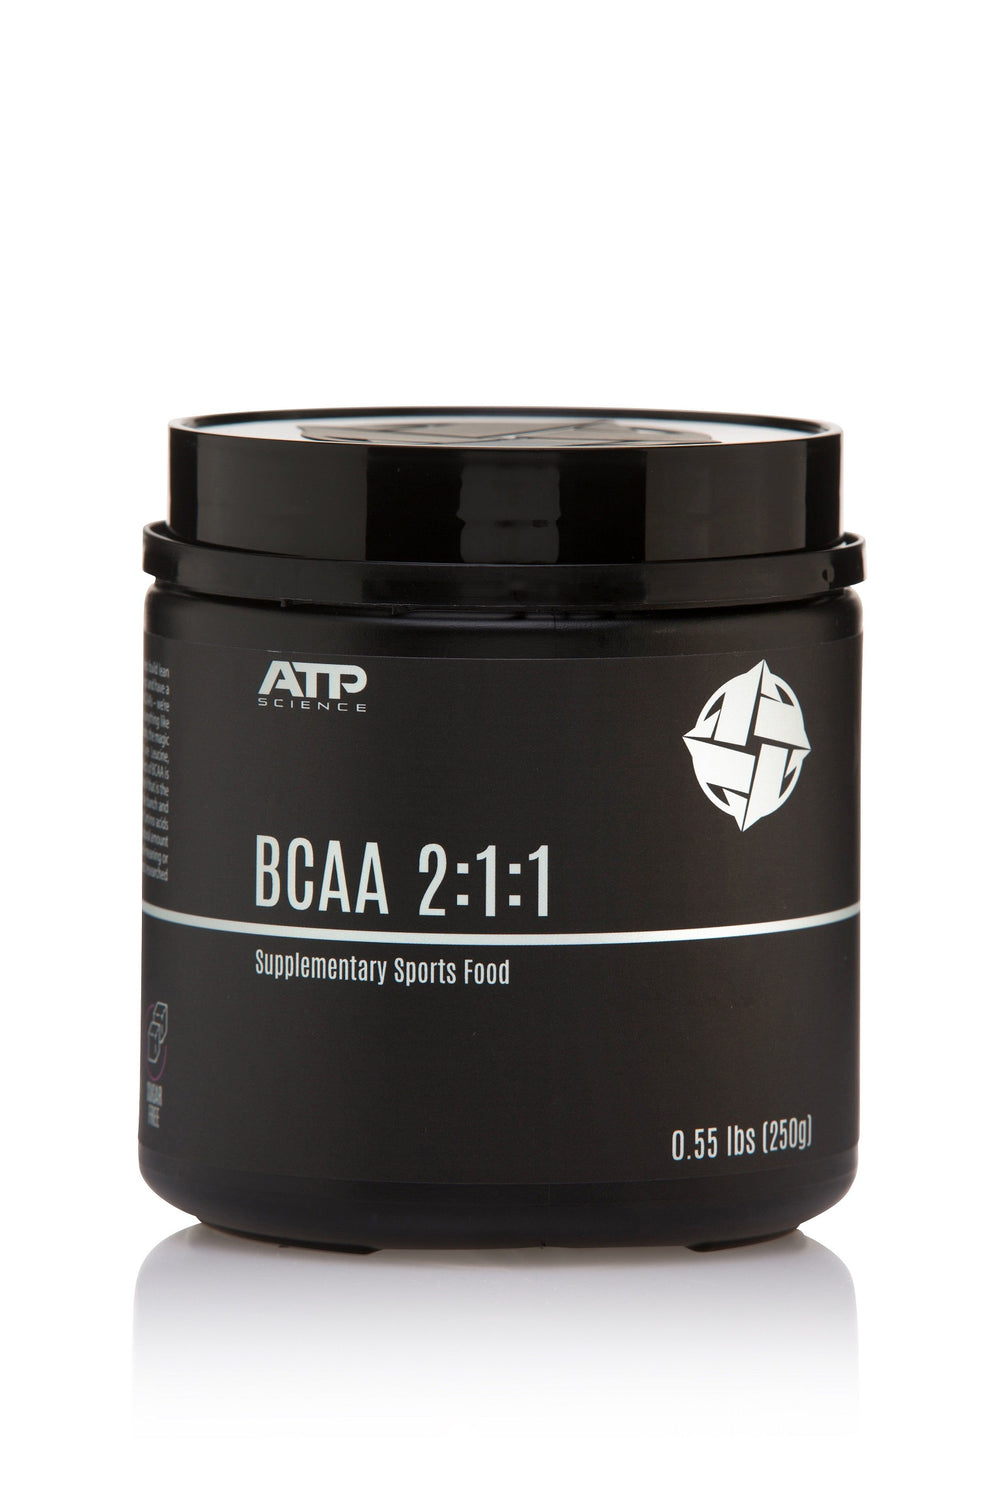 ATP BCAA - Super Nutrition